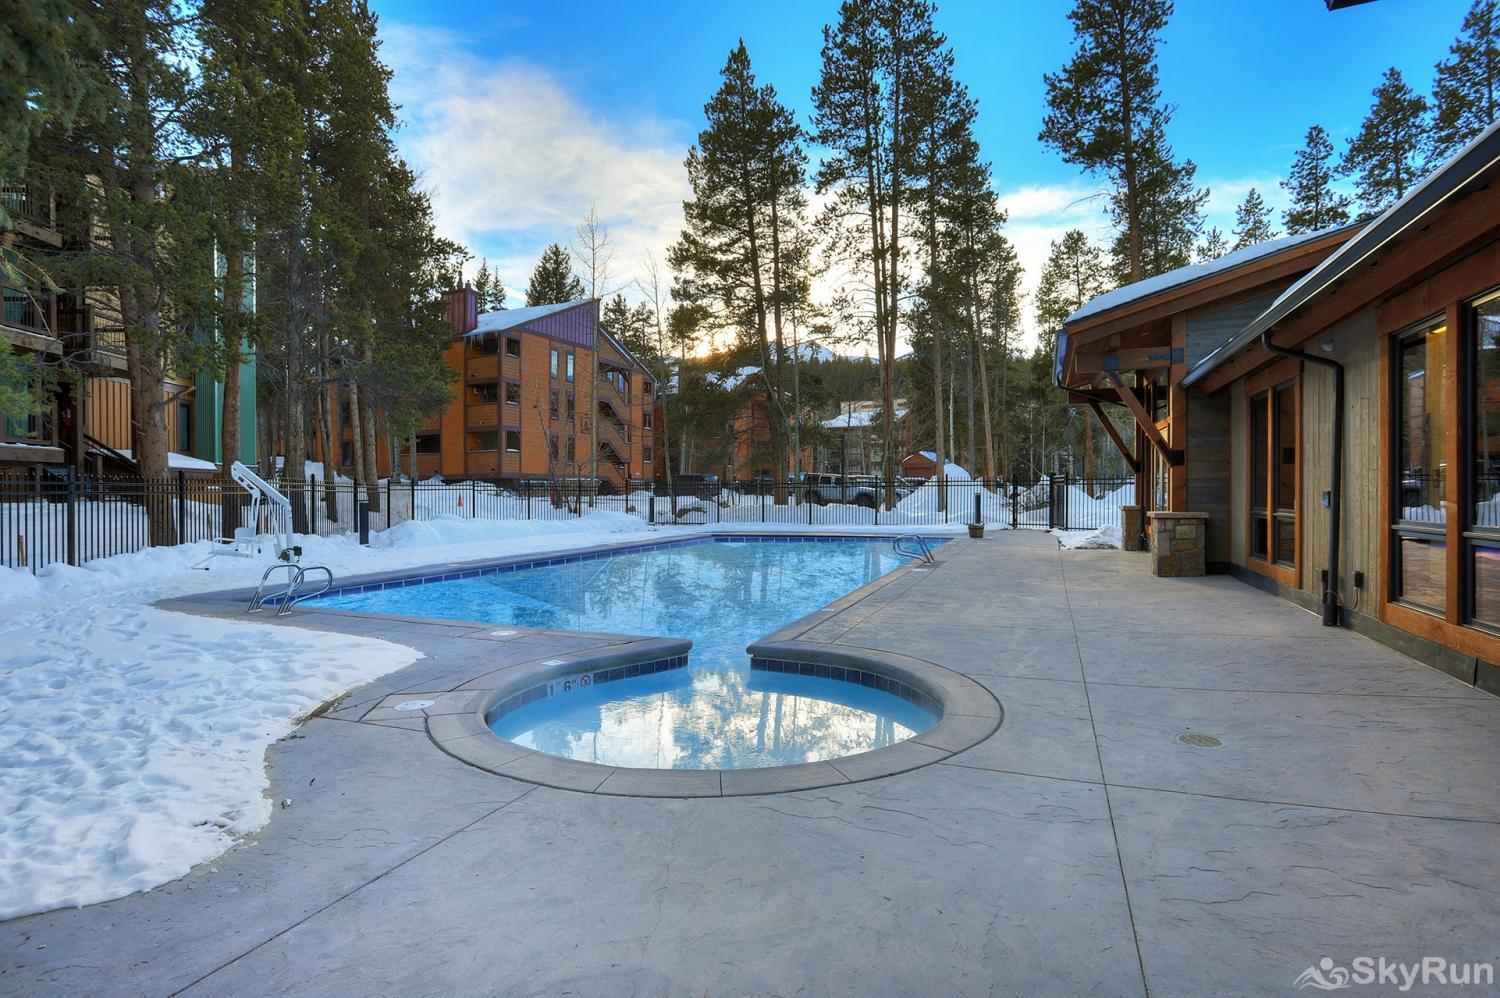 Pine Creek Lodge Relax and unwind in the outdoor heated pool & hot tubs